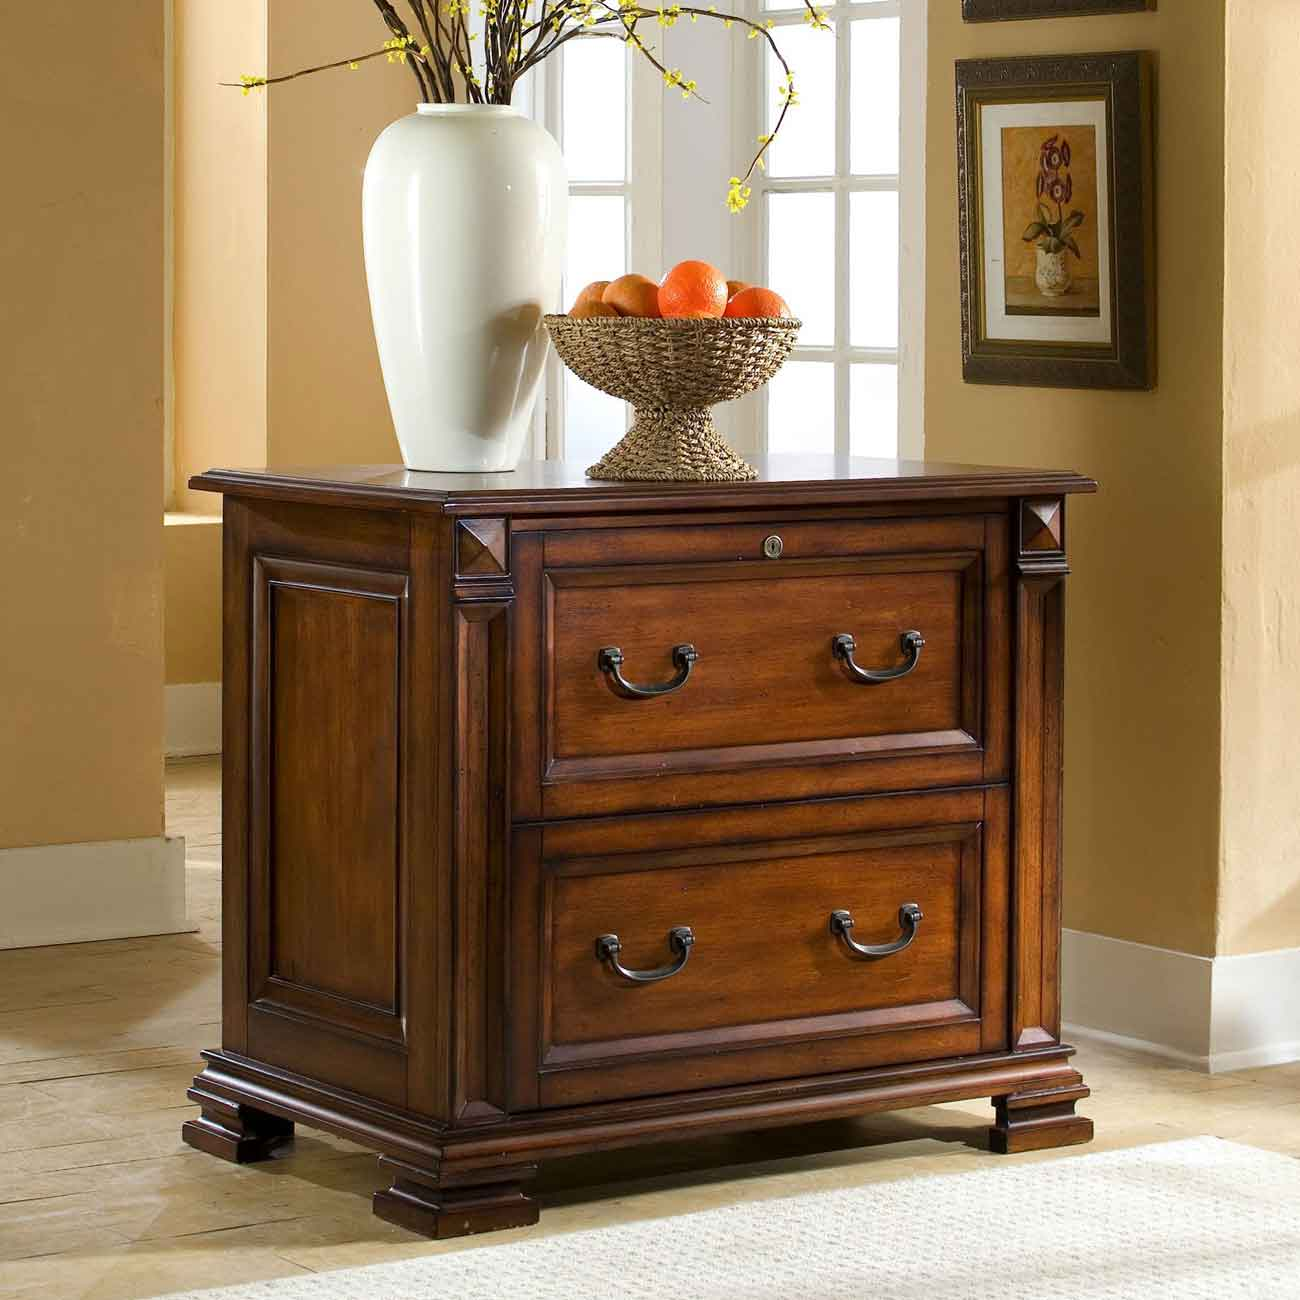 Riverside Serenato Cherry Lateral Filing Cabinet